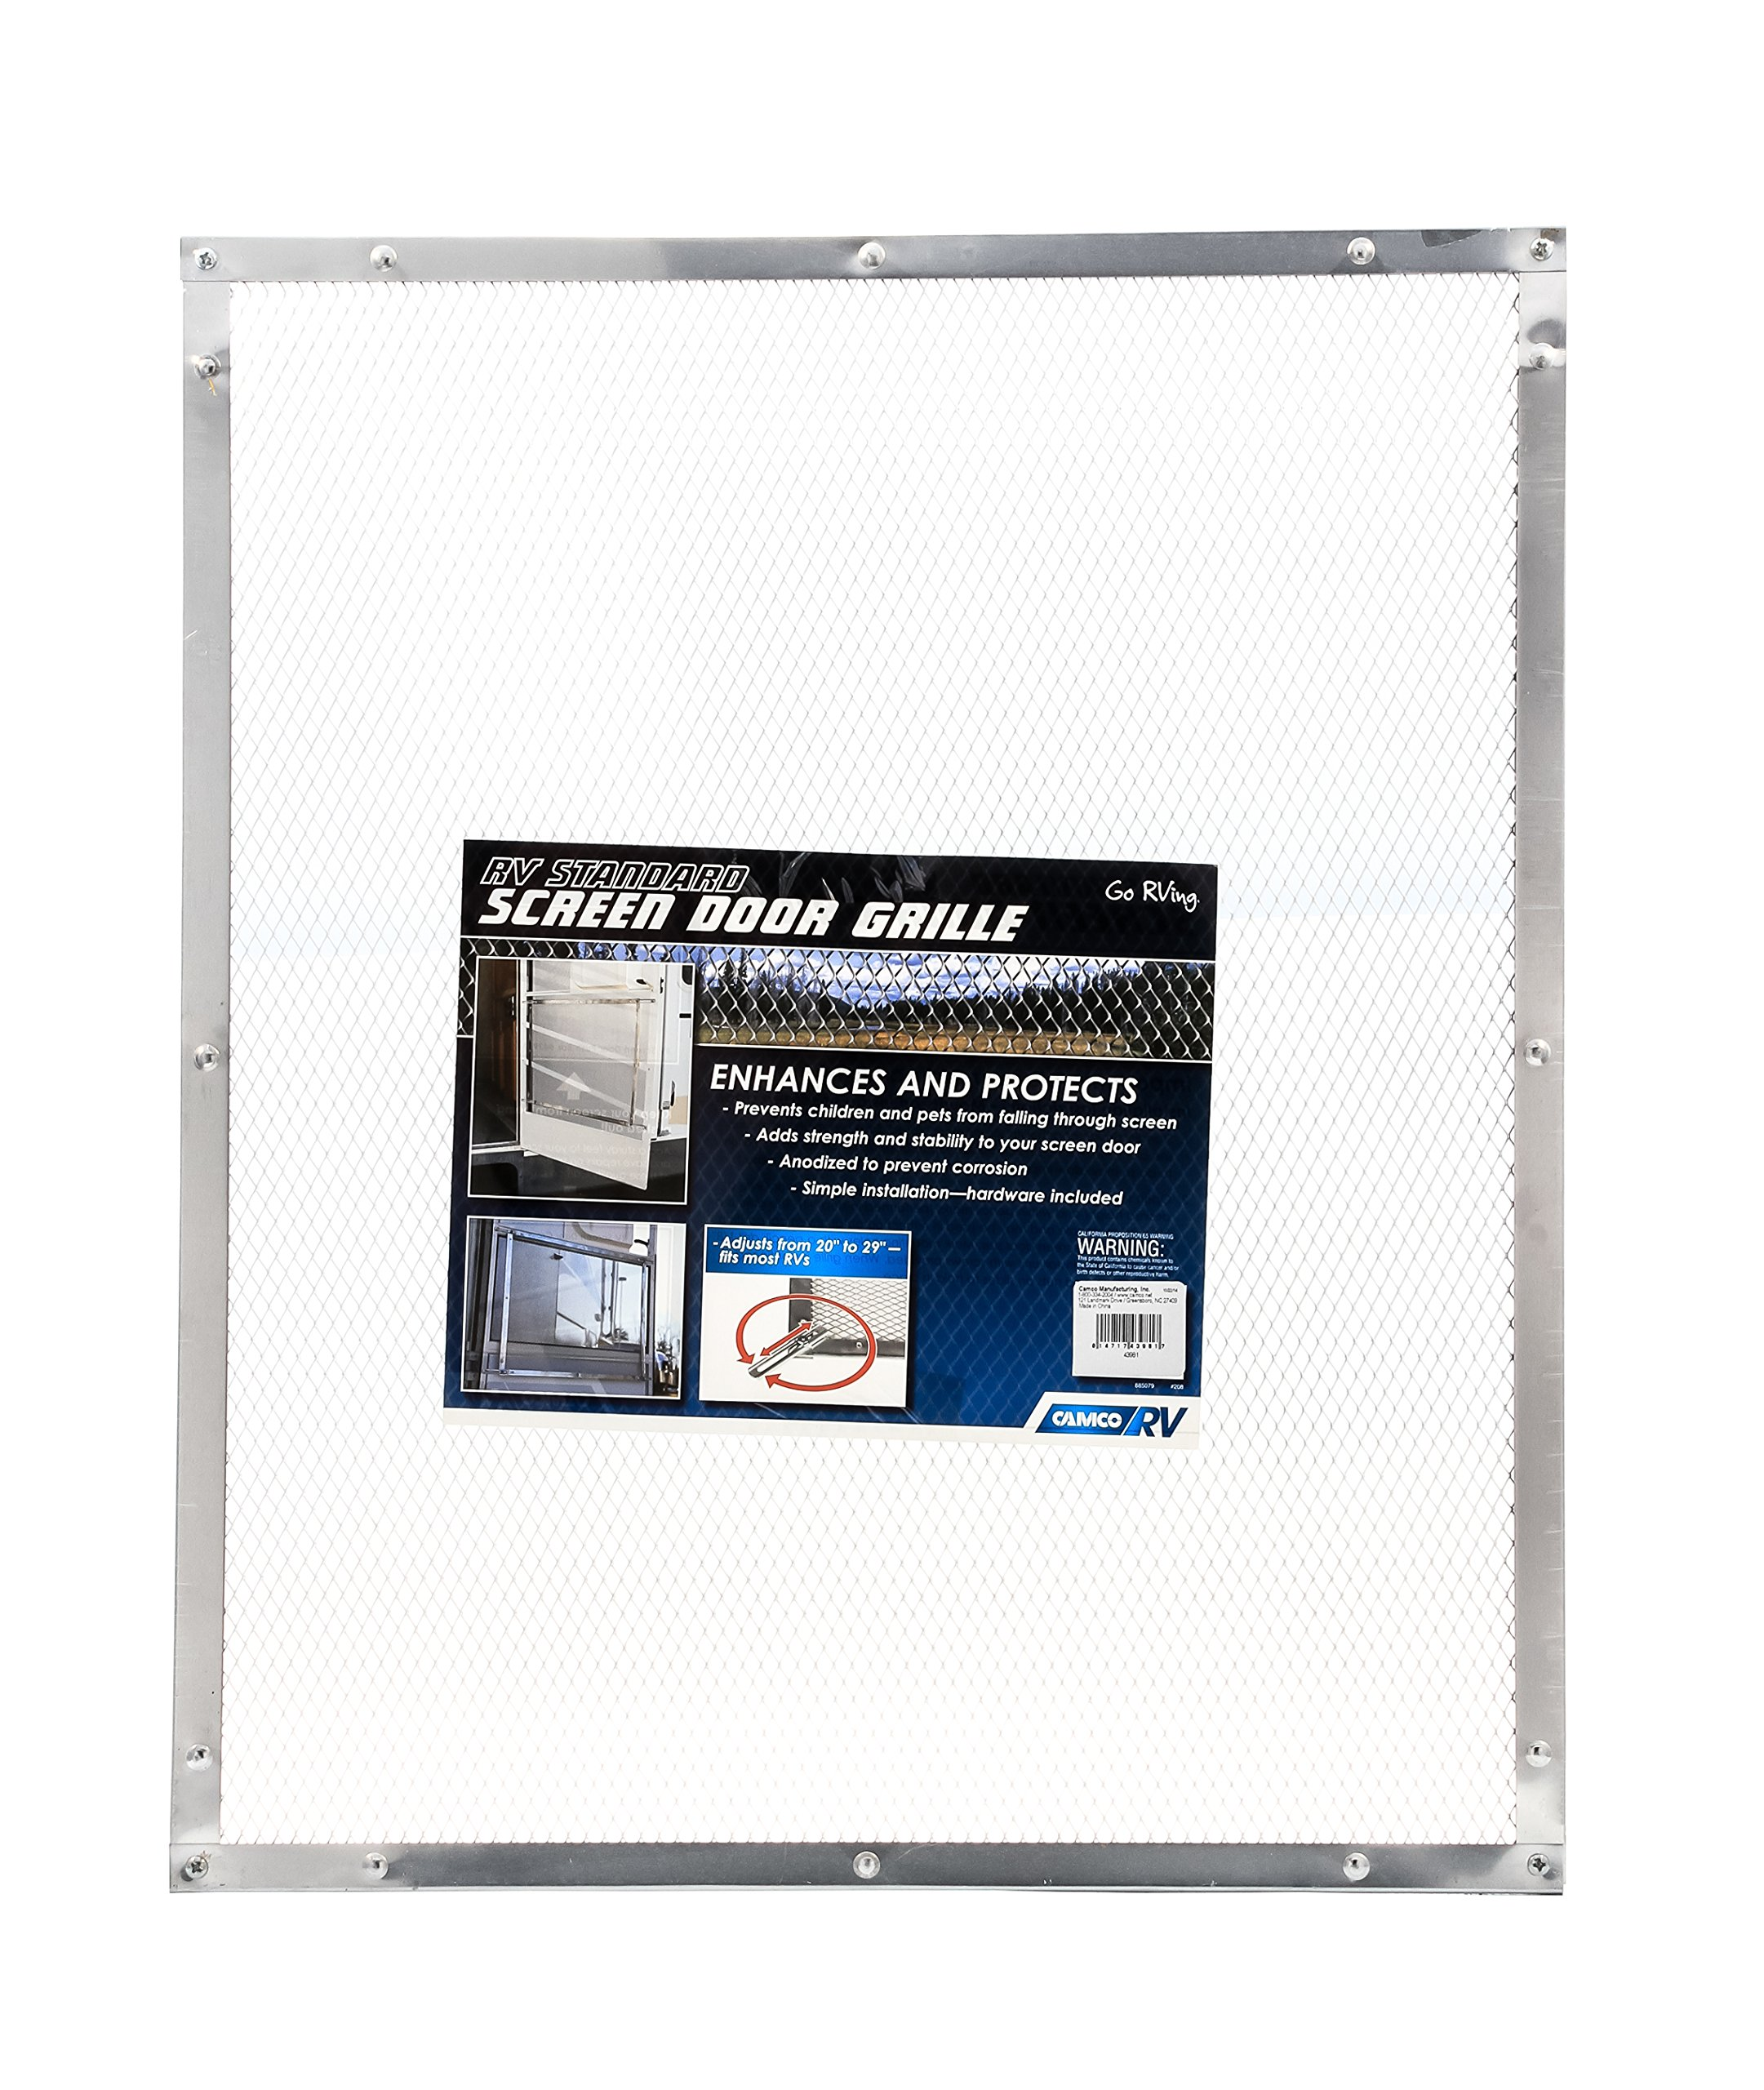 Camco 43981 Aluminum Screen Door Standard Mesh Grille - Protects Your RV's Screen Door, Anodized Aluminum Will Not Corrode by Camco (Image #1)